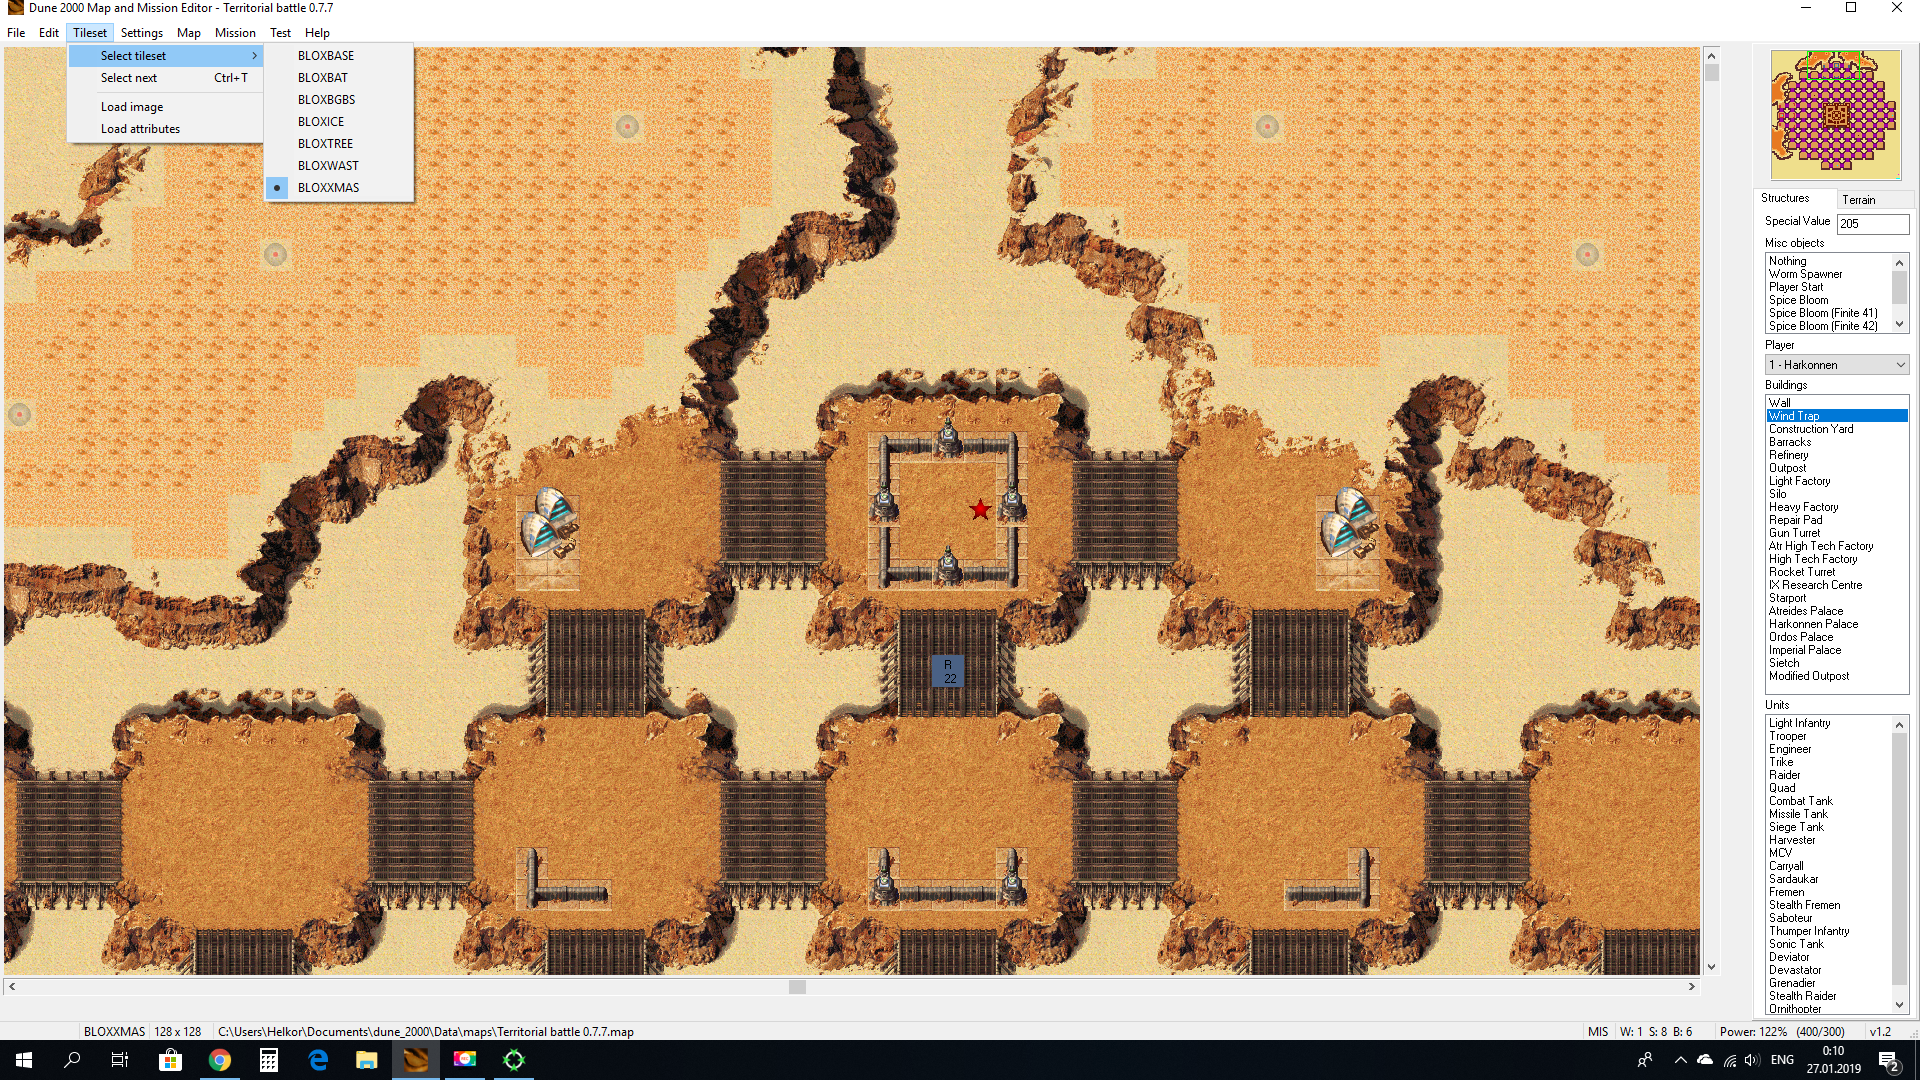 Map editor: problems with tilesets. - Dune 2000 Support ... on peninsula map, plain map, the hobbit map, strait map, badlands map, channel map, star wars map, wall street map, moon map, brazil map, ringworld map, steppe map, mulholland drive map, lagoon map, paper towns map, estuary map, the maze runner map, cliff map, ark map, star trek map,